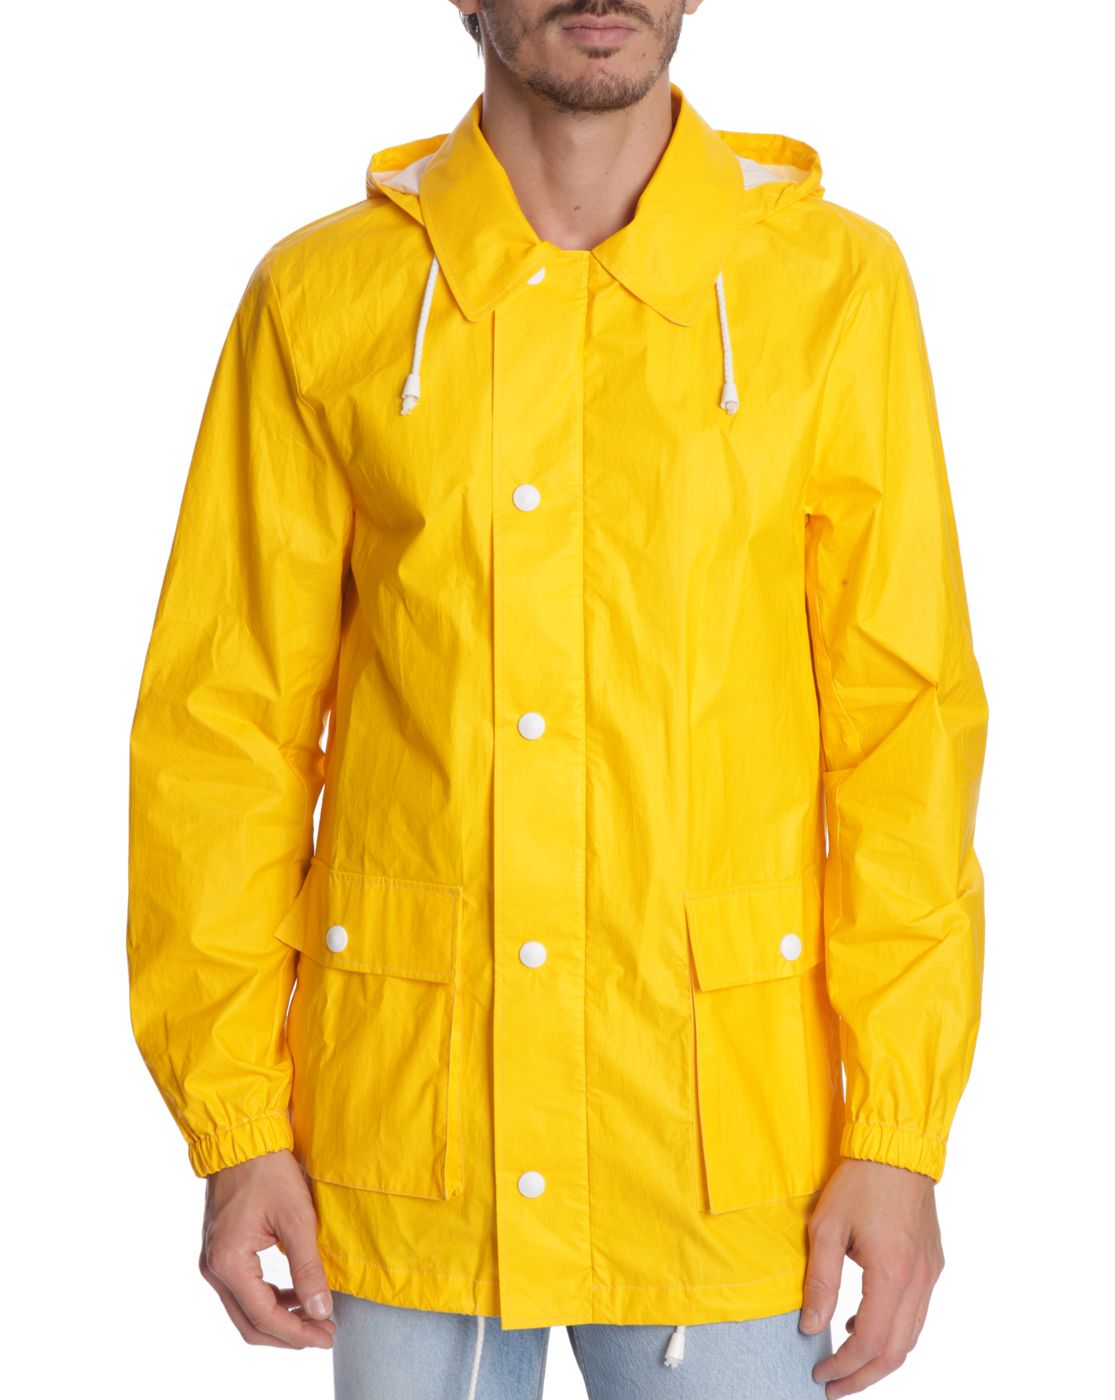 Guy in yellow raincoat